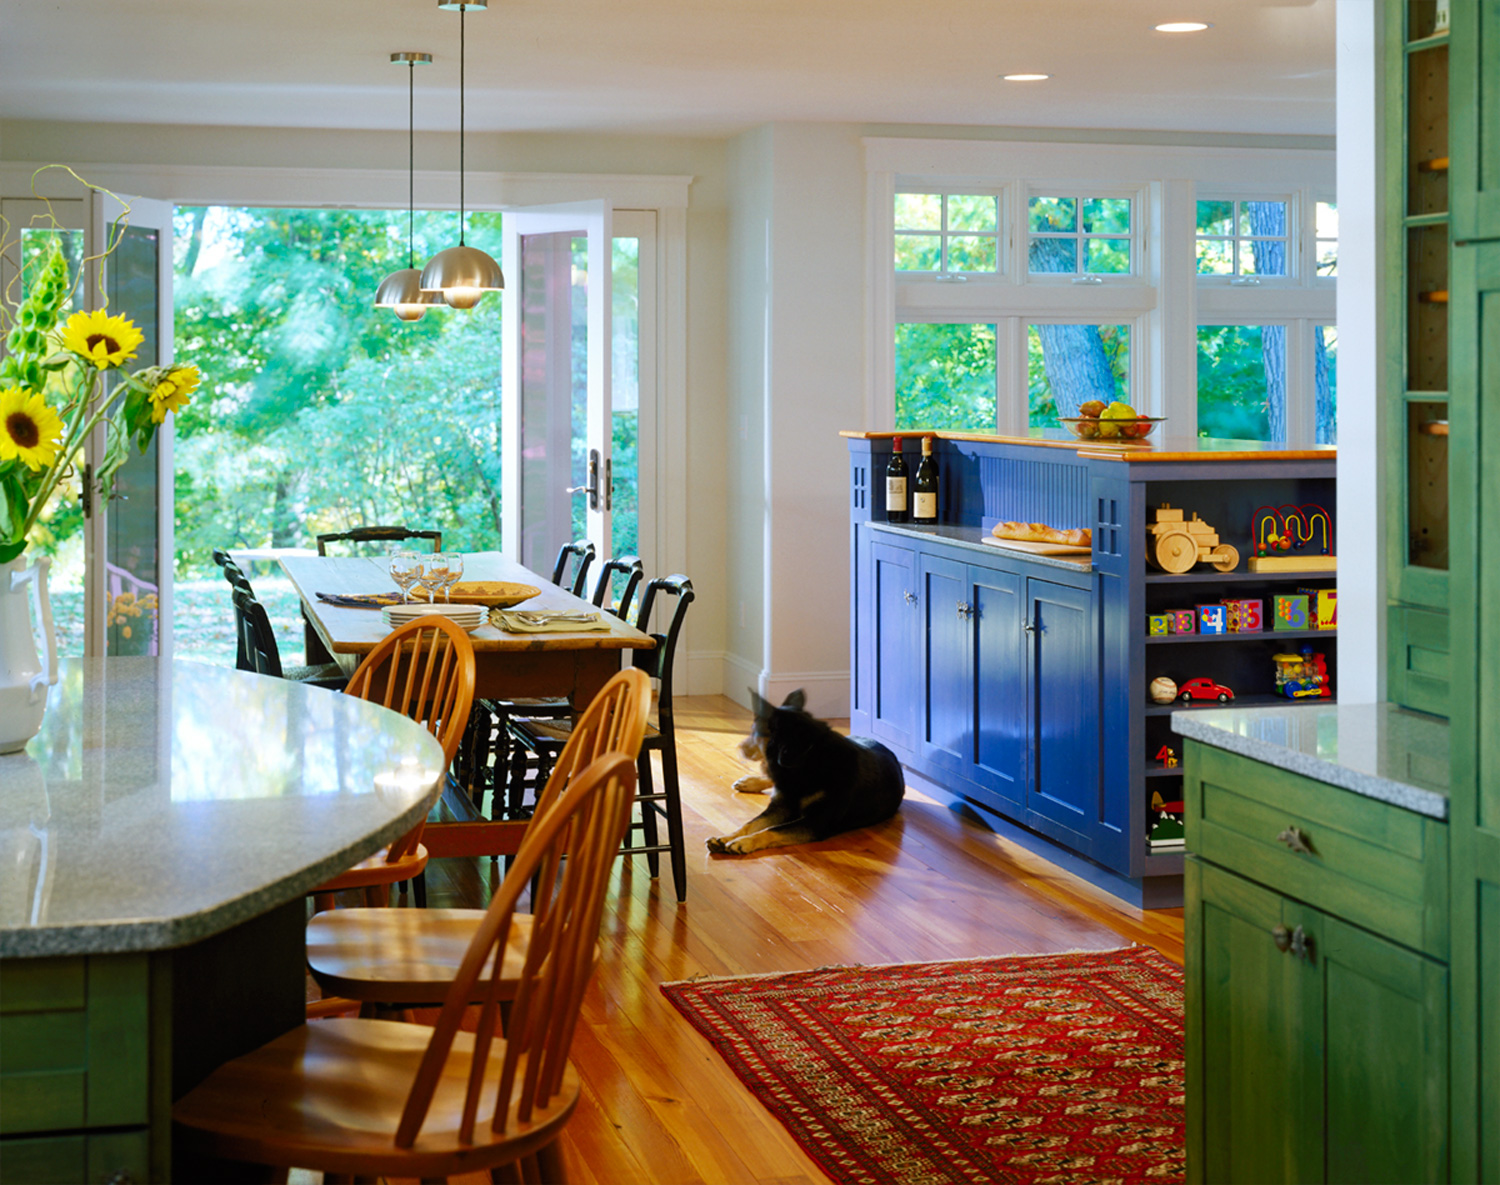 Jones-Hecht-Interior-Dining-with-Dog.jpg